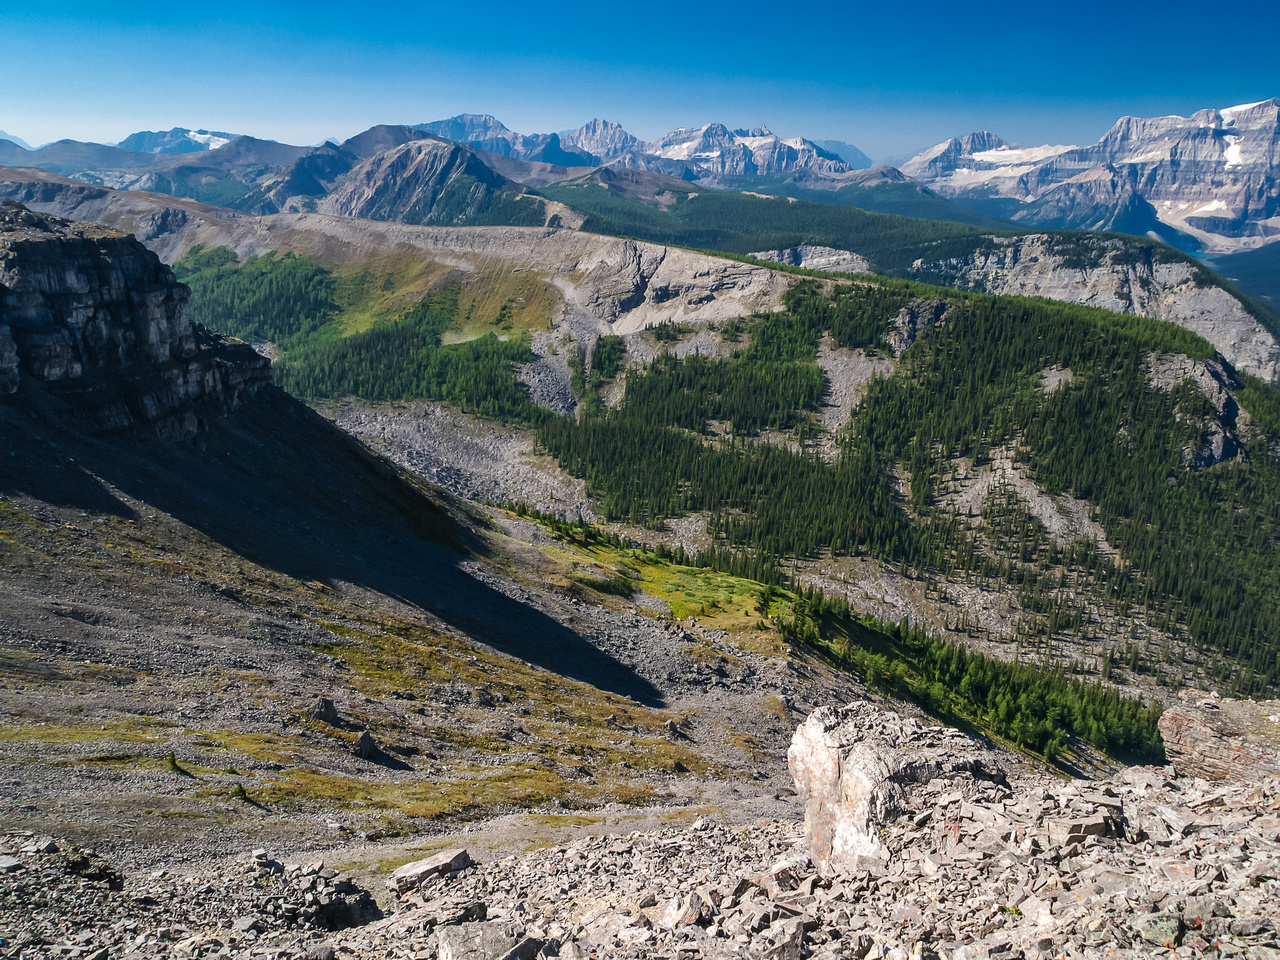 Looking down my escape route off the west face with lovely alpine meadows of Lost Horse and Pharaoh Creeks in the distance.